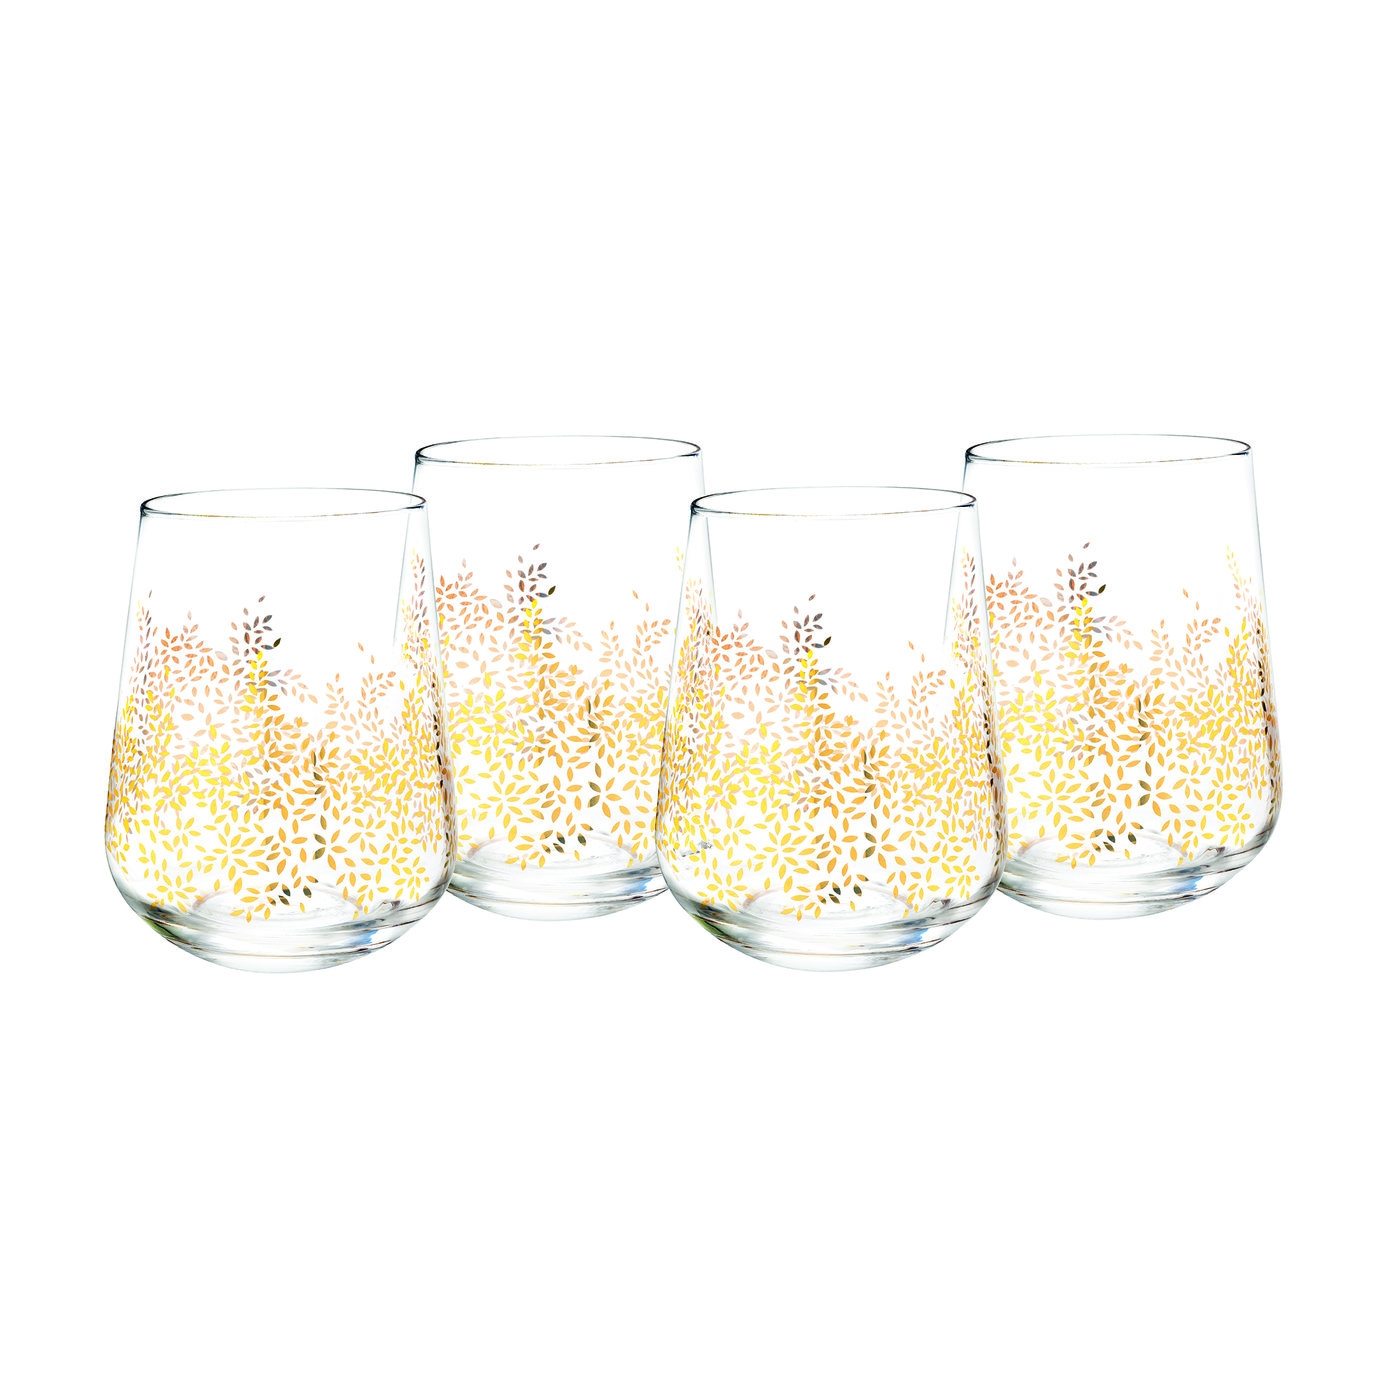 Sara Miller London for Portmeirion Stemless Wine Glass Set of 4 image number 0